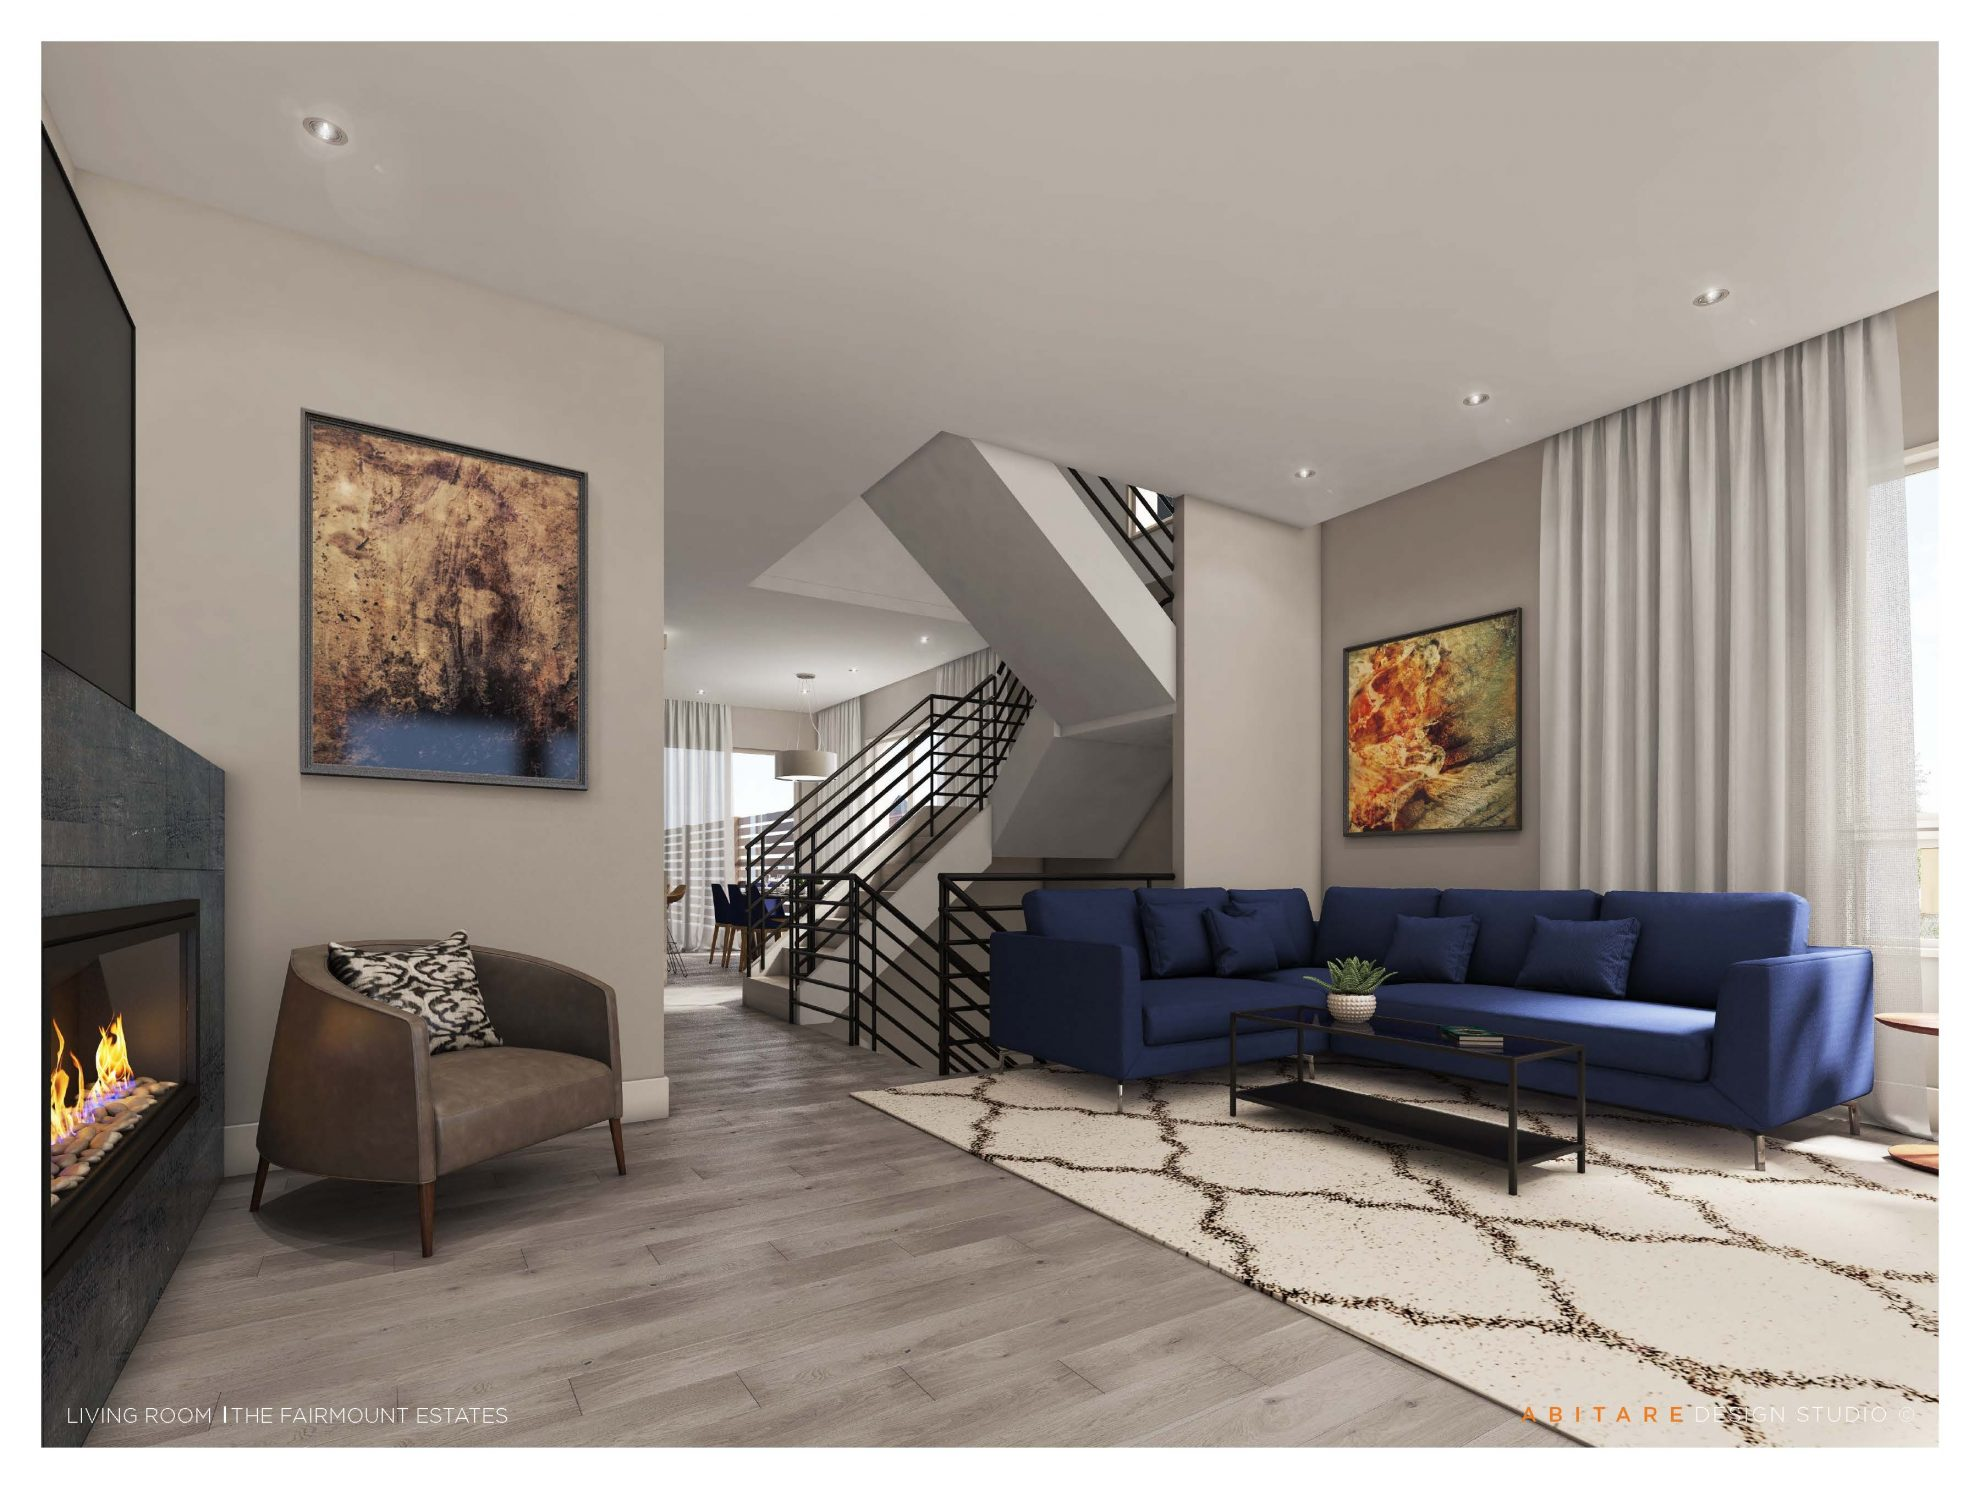 Fairmount Estates Interior Renderings_08-03-18_Page_04